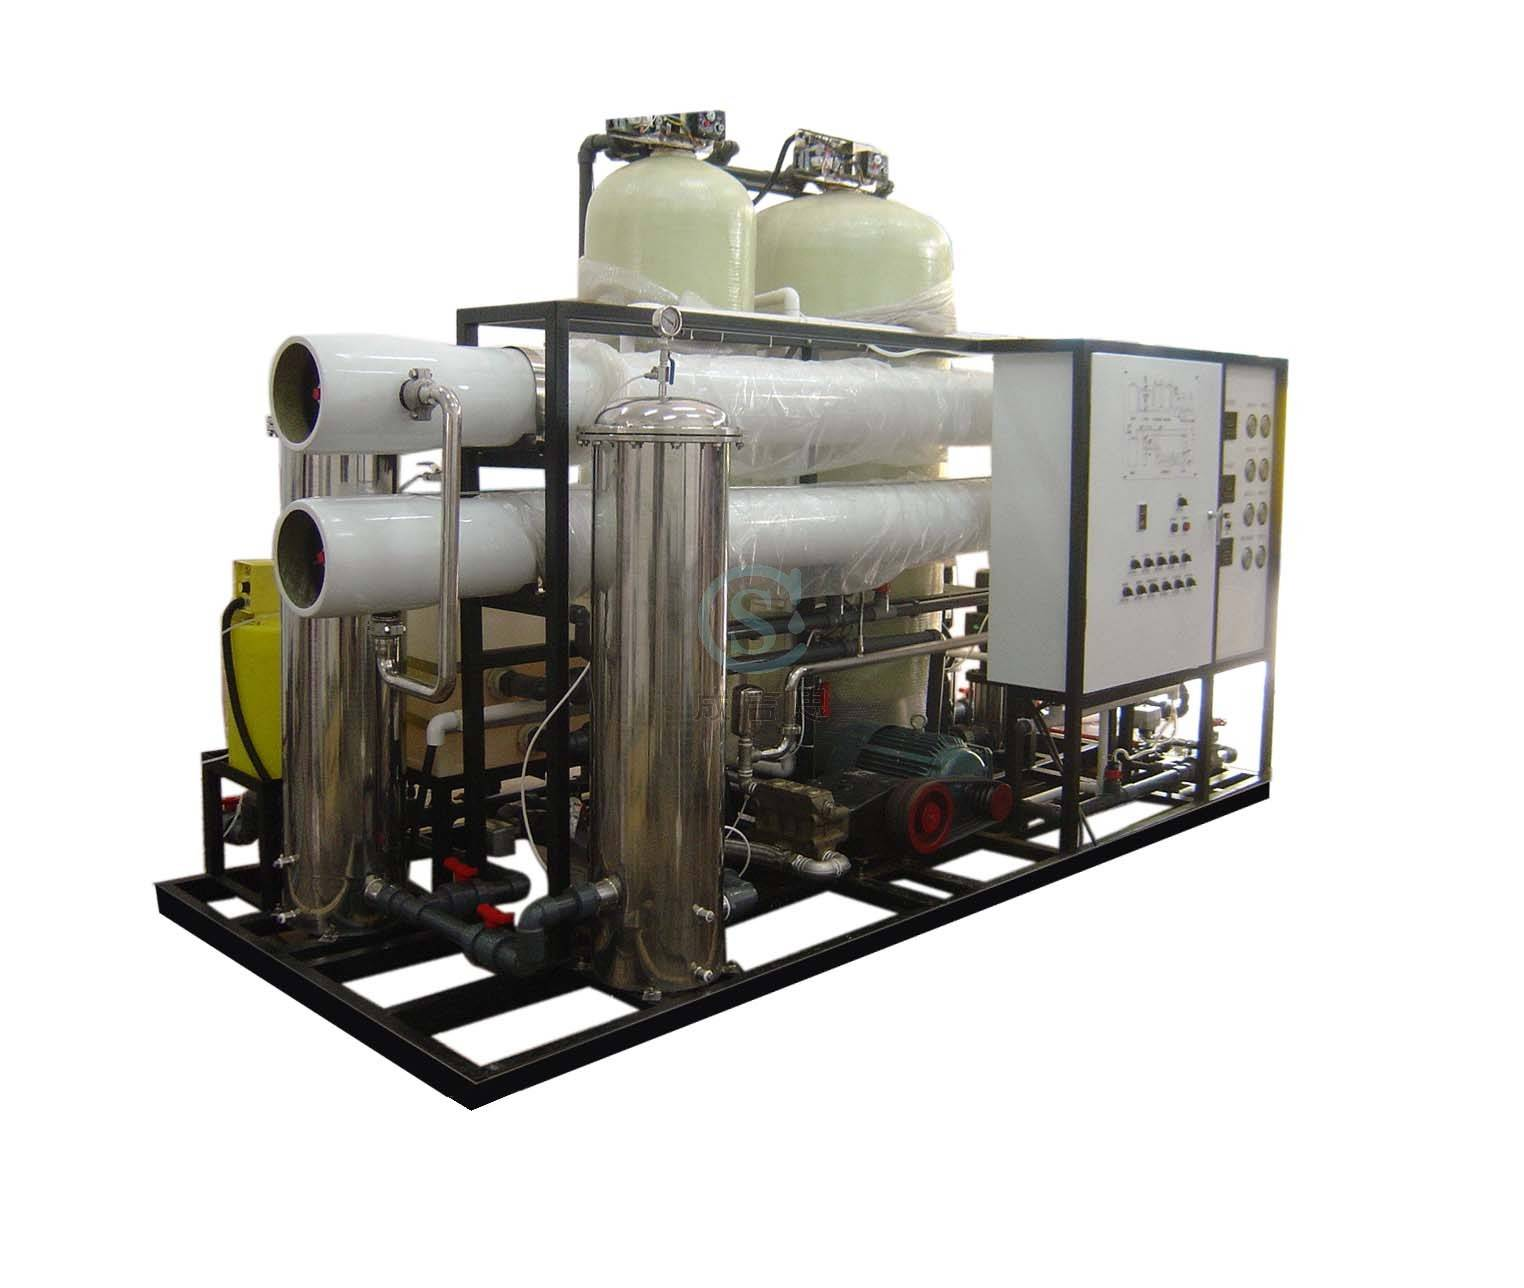 RO reverse osmosis seawater desalination system for drinking /swimming pools